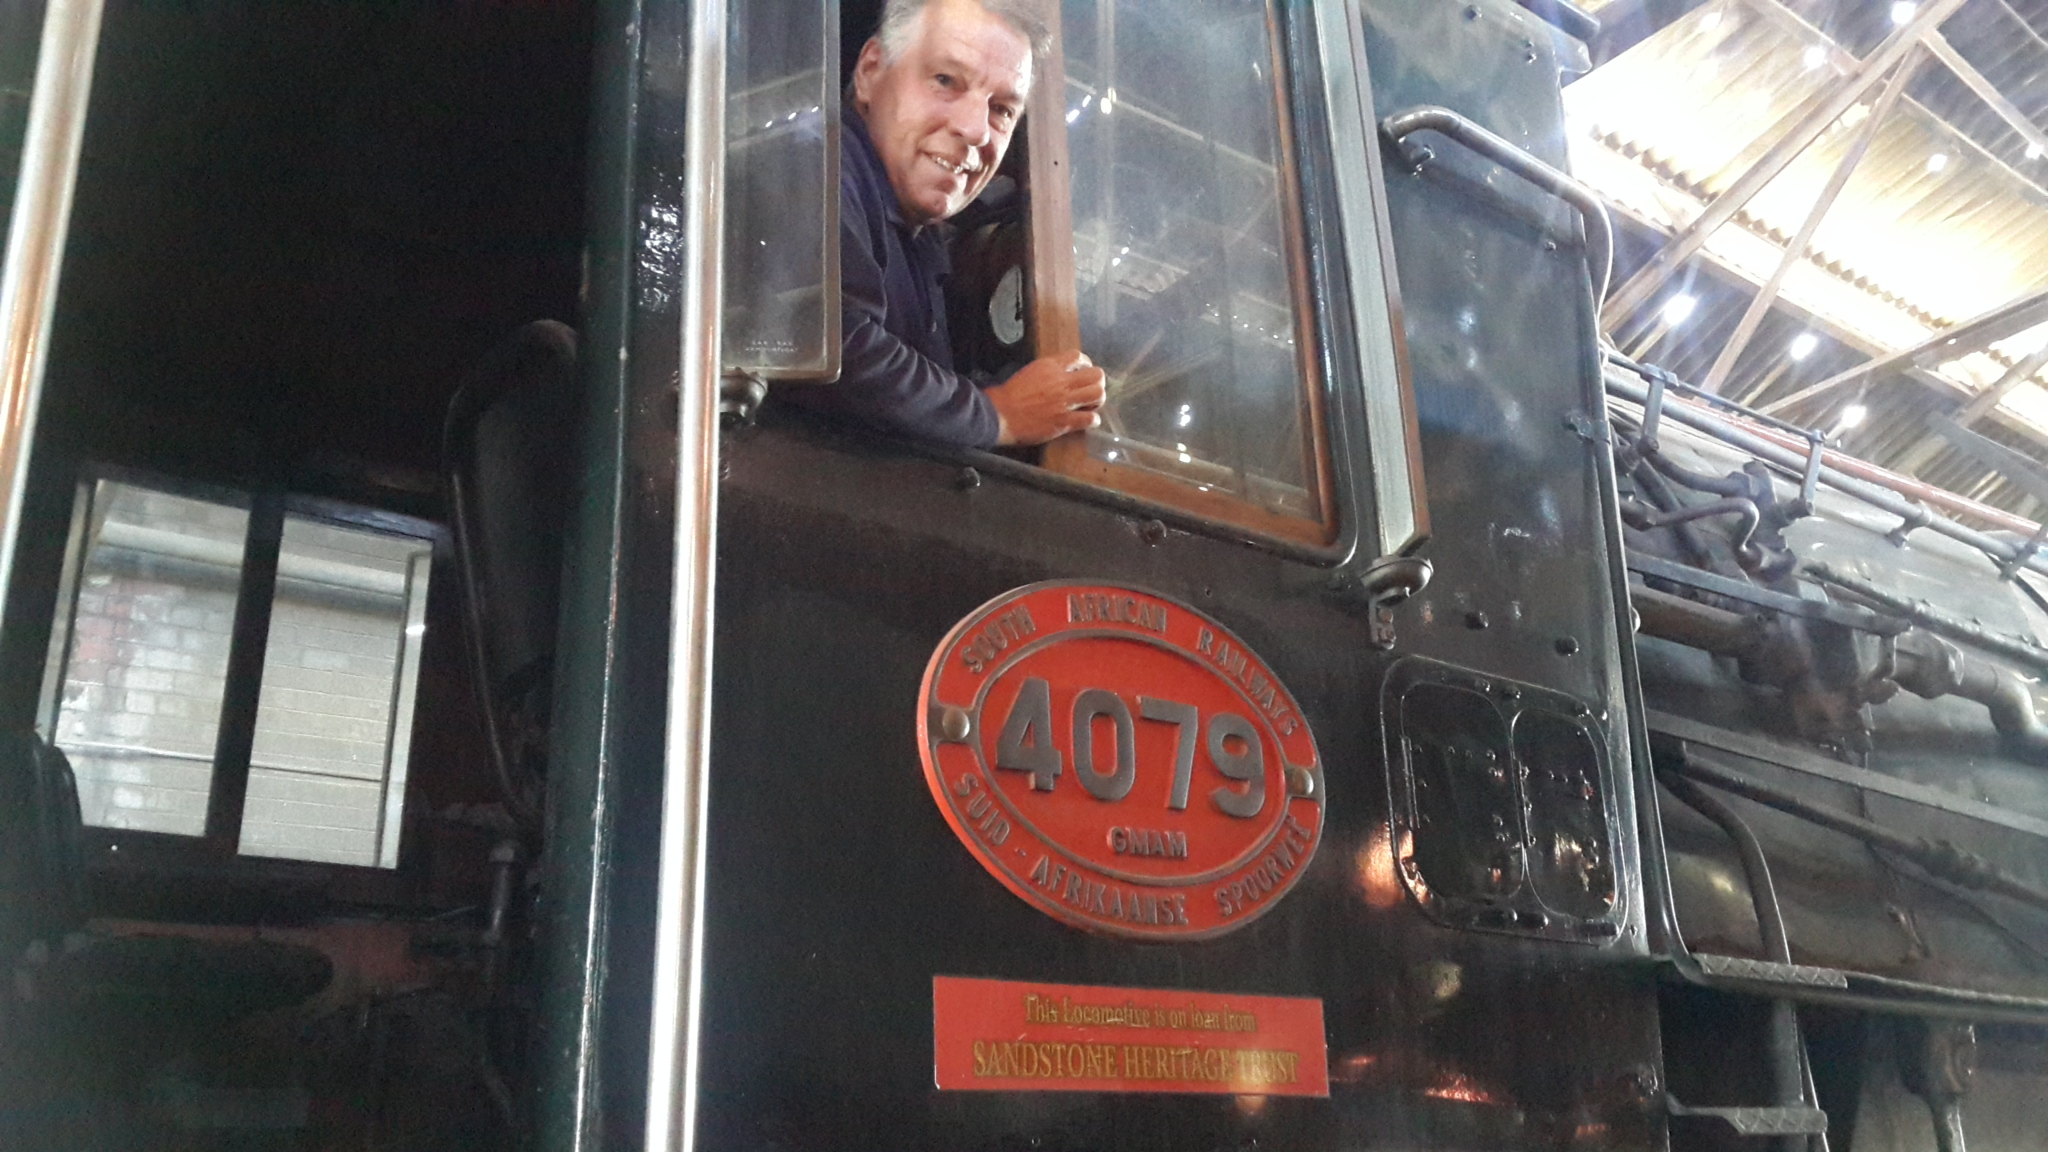 At Reefsteamers Andreas in the cab of 4079